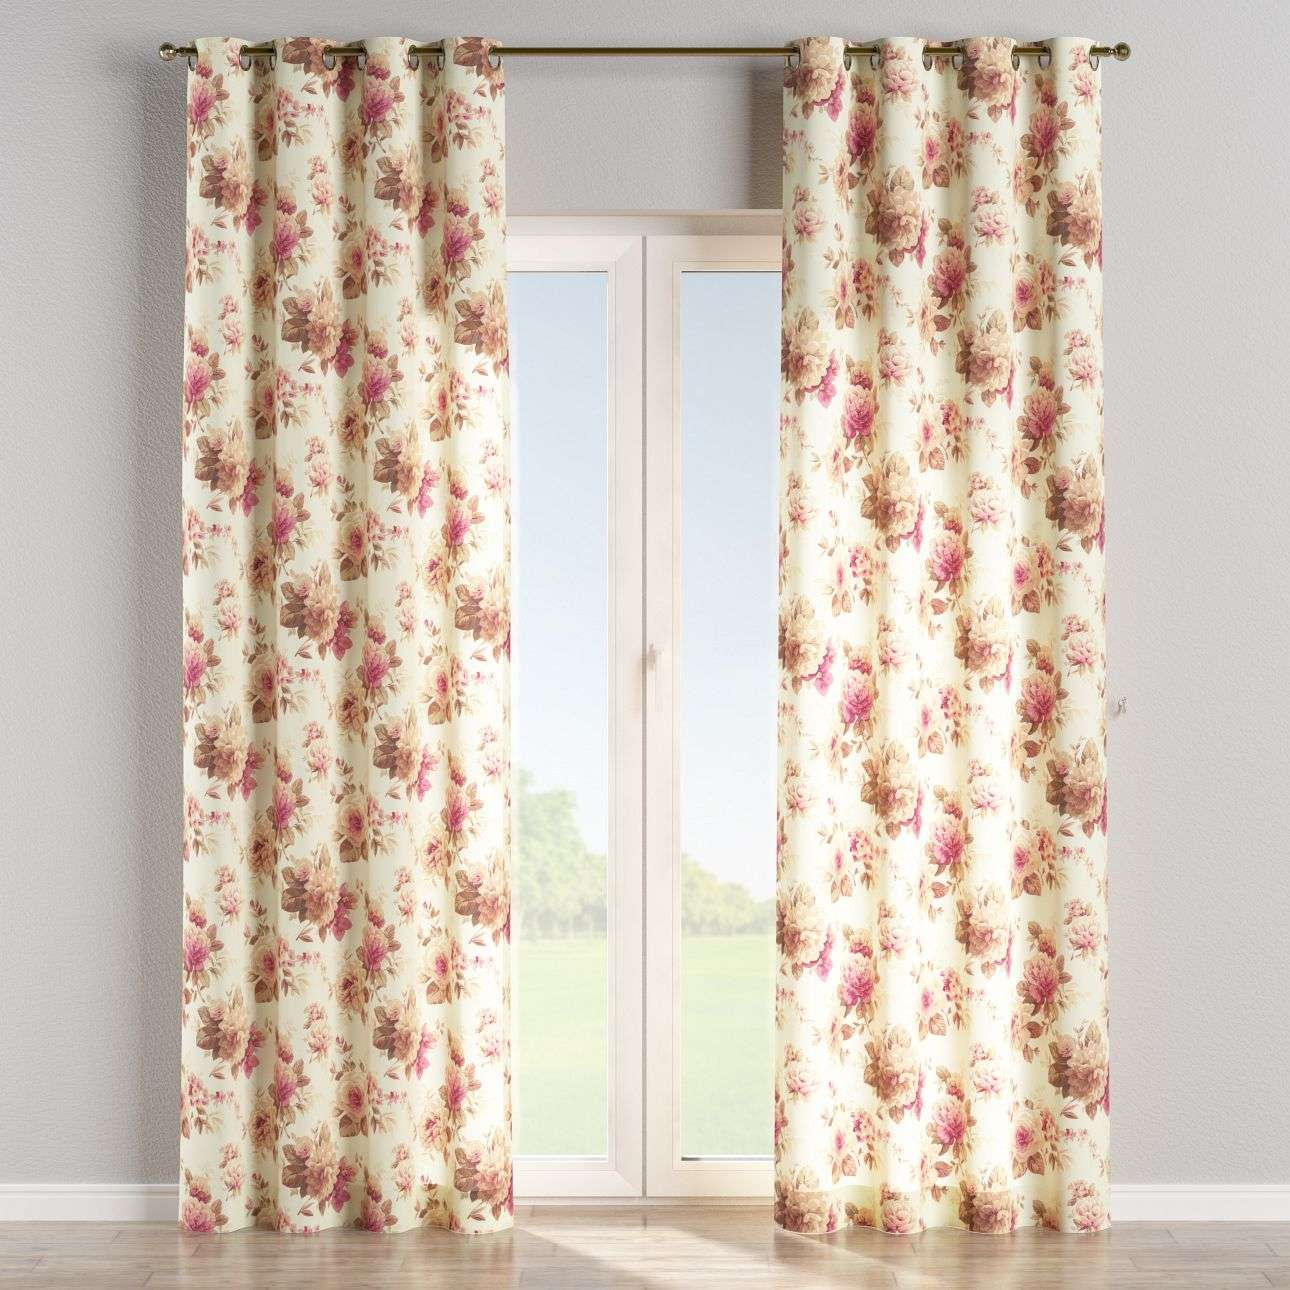 Eyelet curtains 130 x 260 cm (51 x 102 inch) in collection Mirella, fabric: 141-06